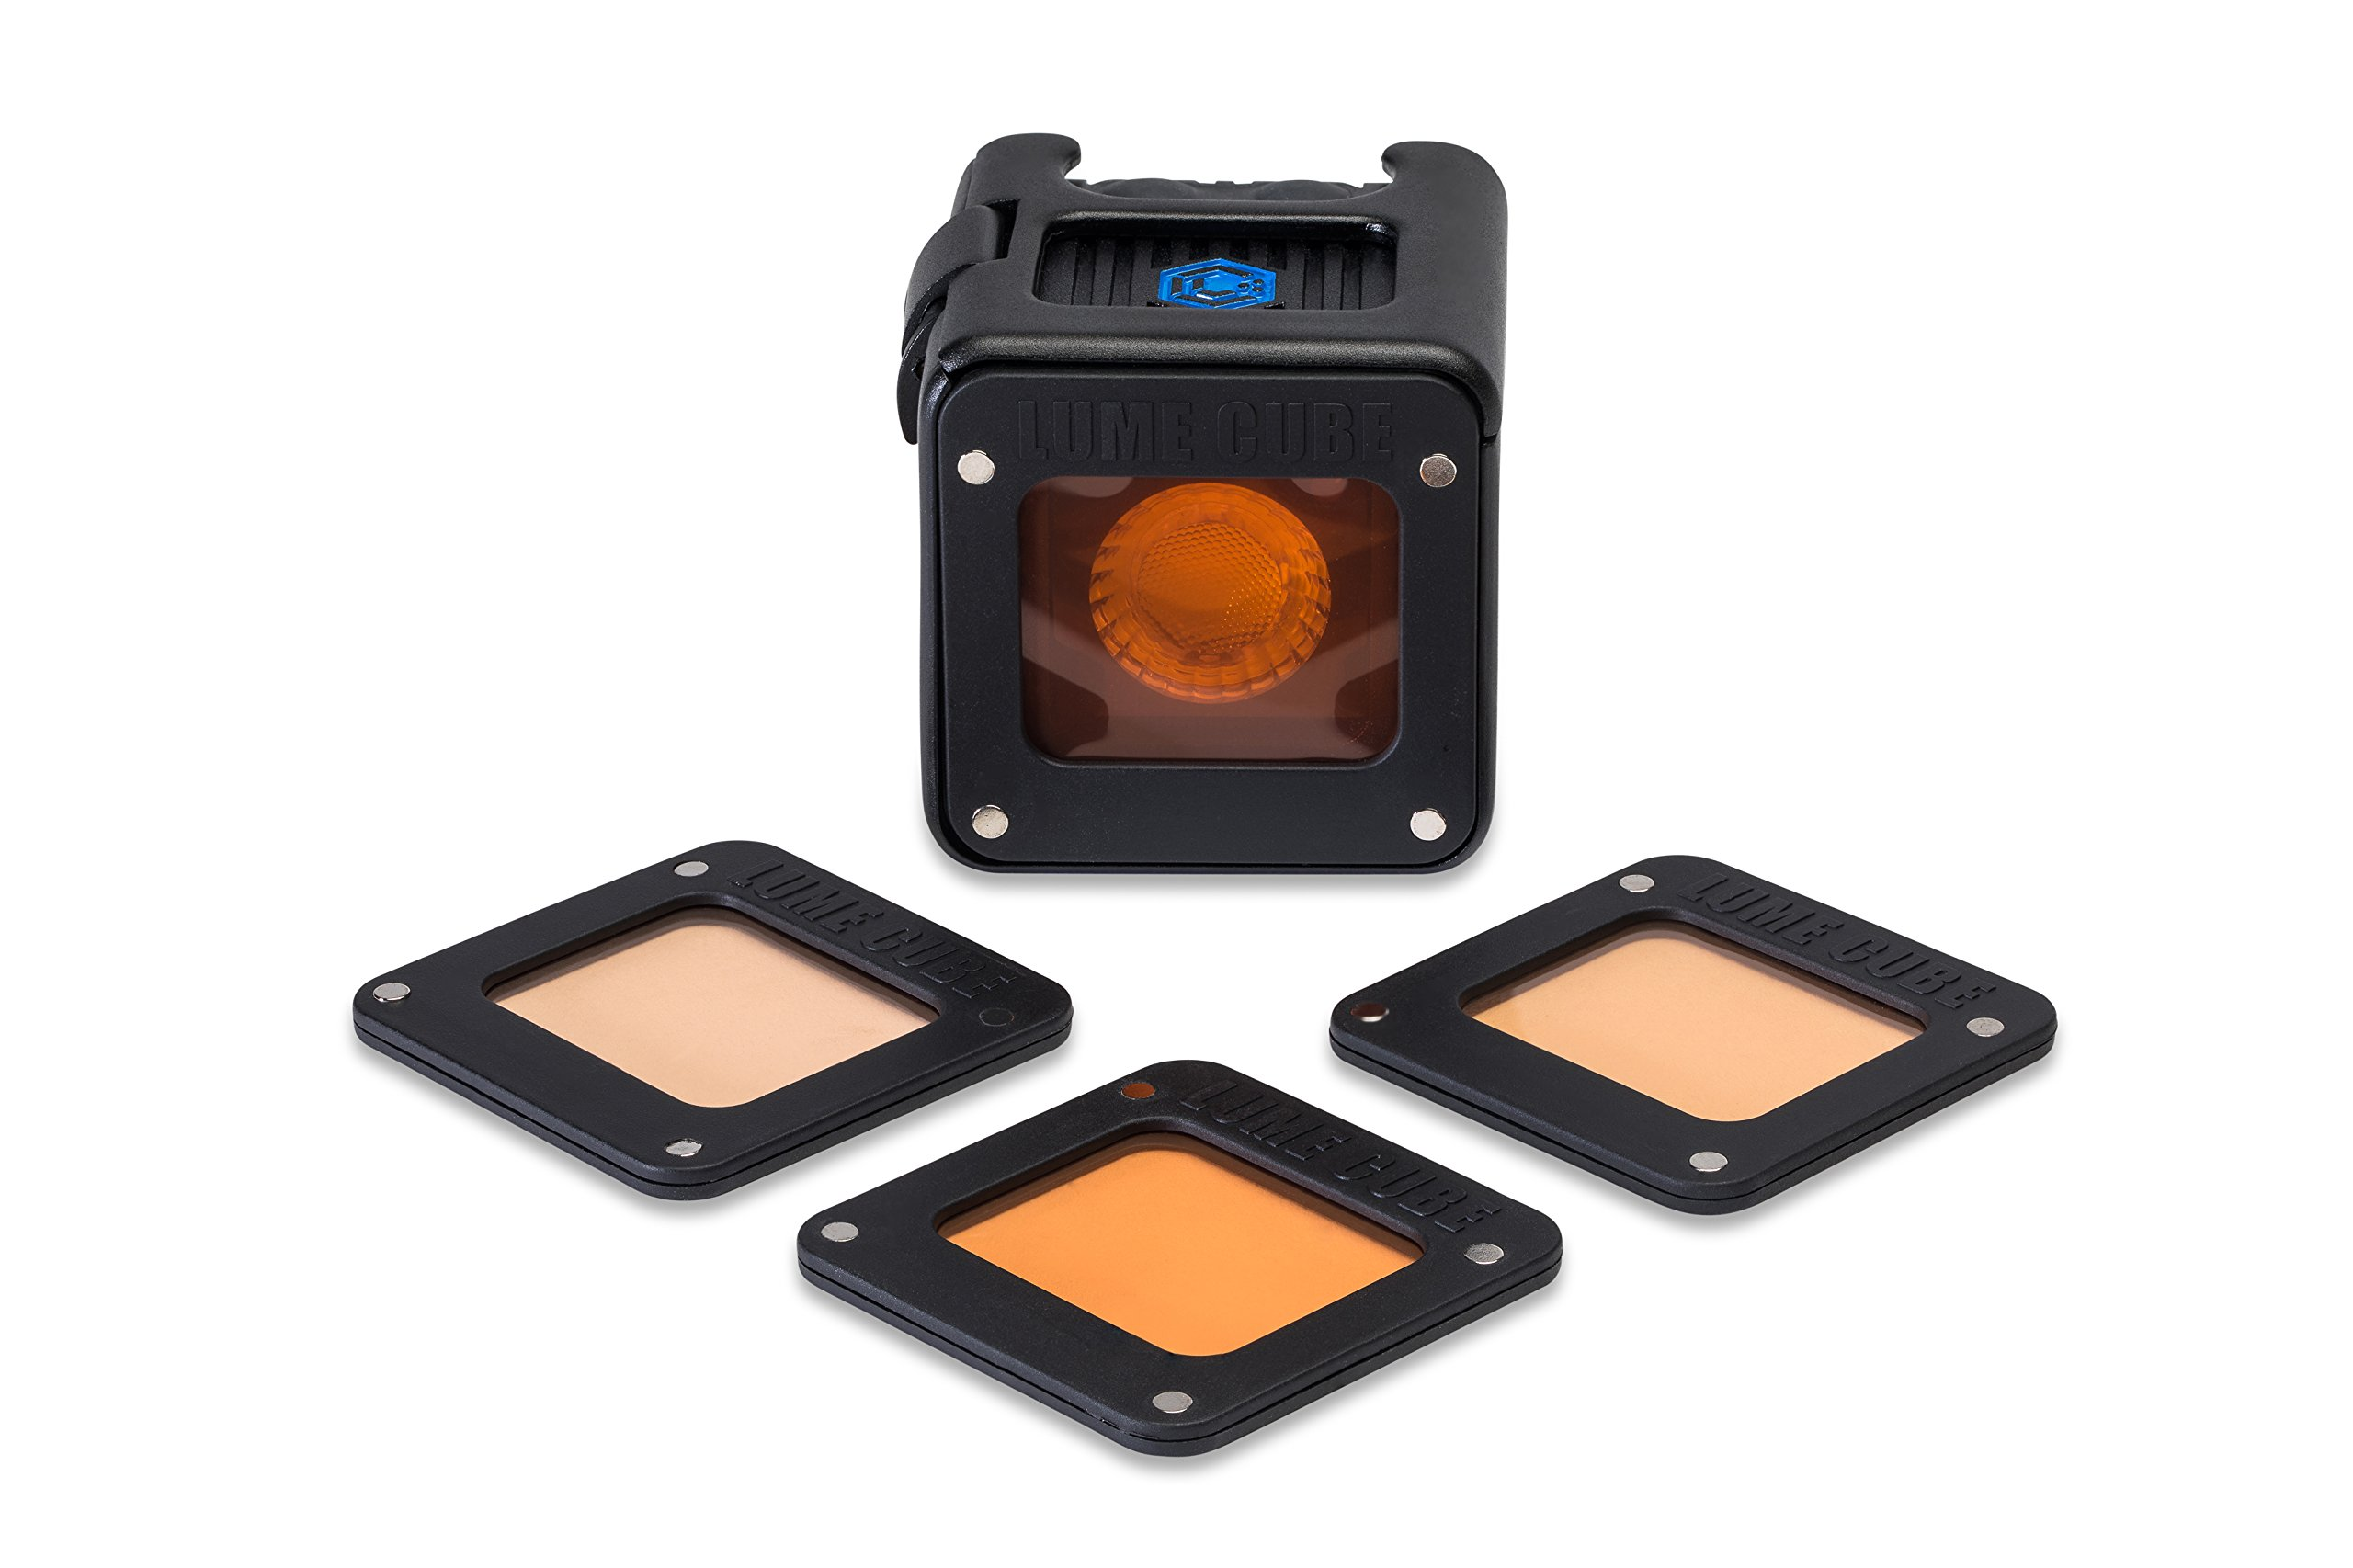 Lume Cube - CTO Warming Gels for the Light-House (Includes 4 Warming Gels) by LUME CUBE